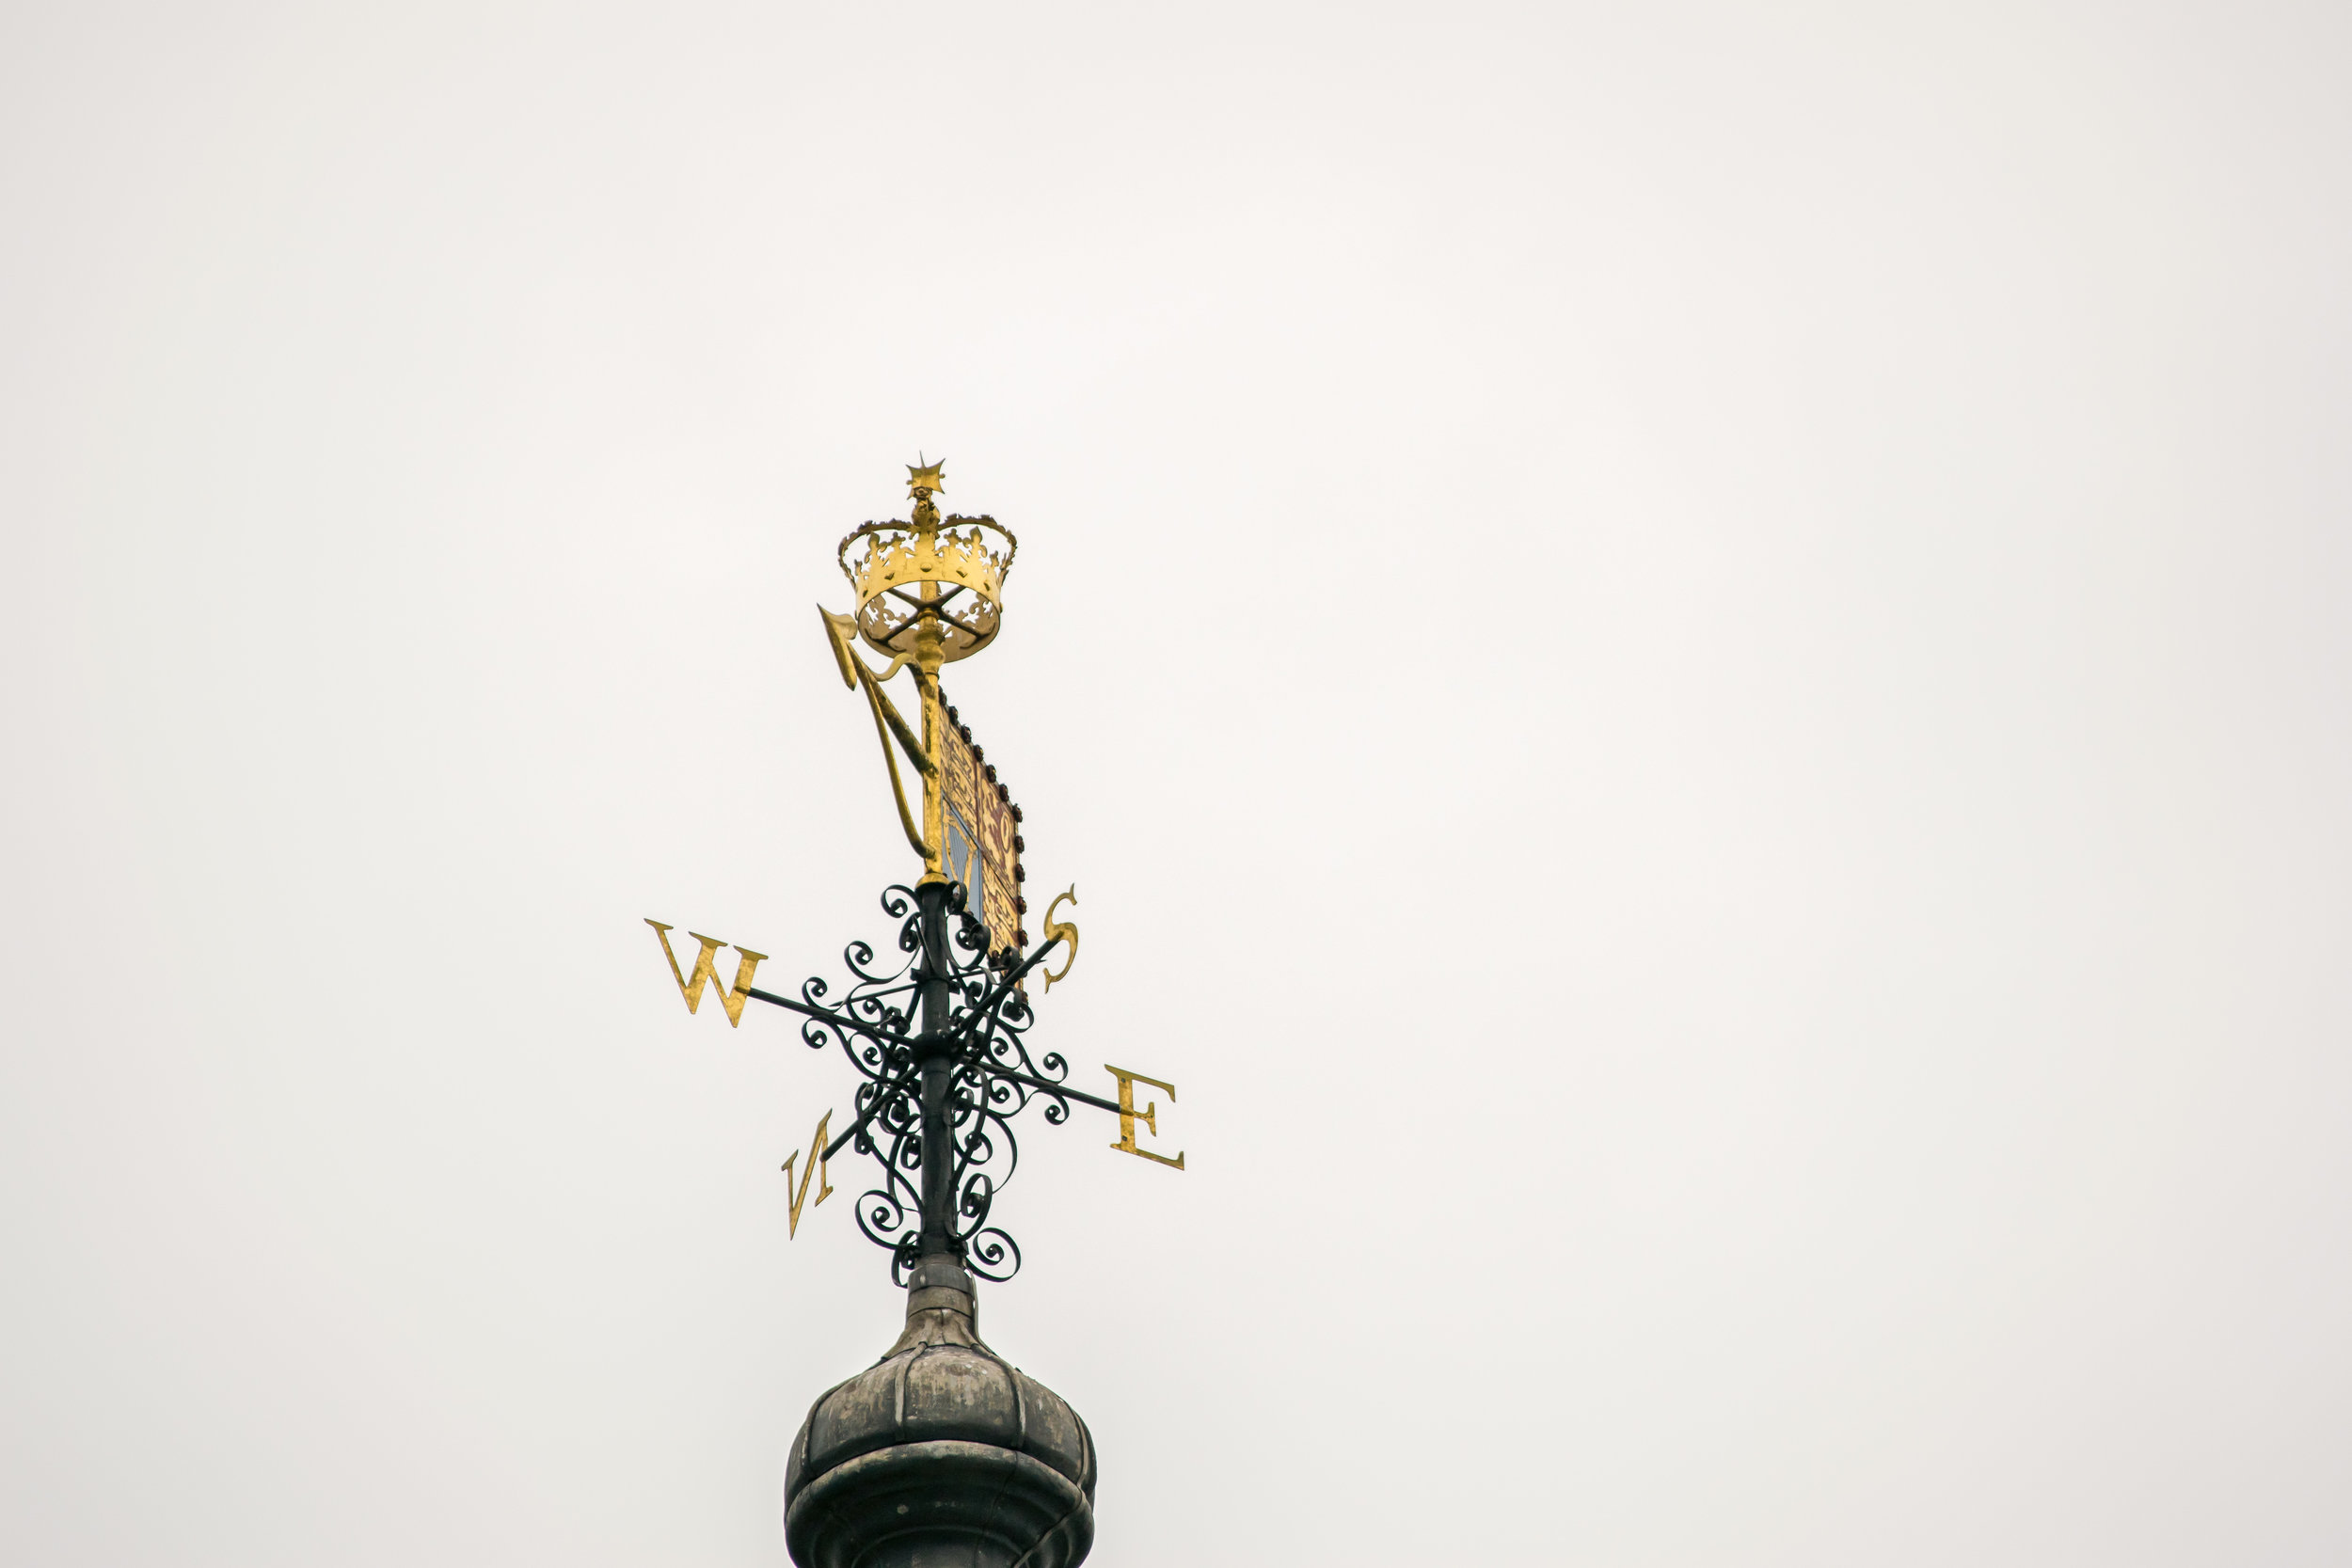 Directional signpost with crown atop the White Tower